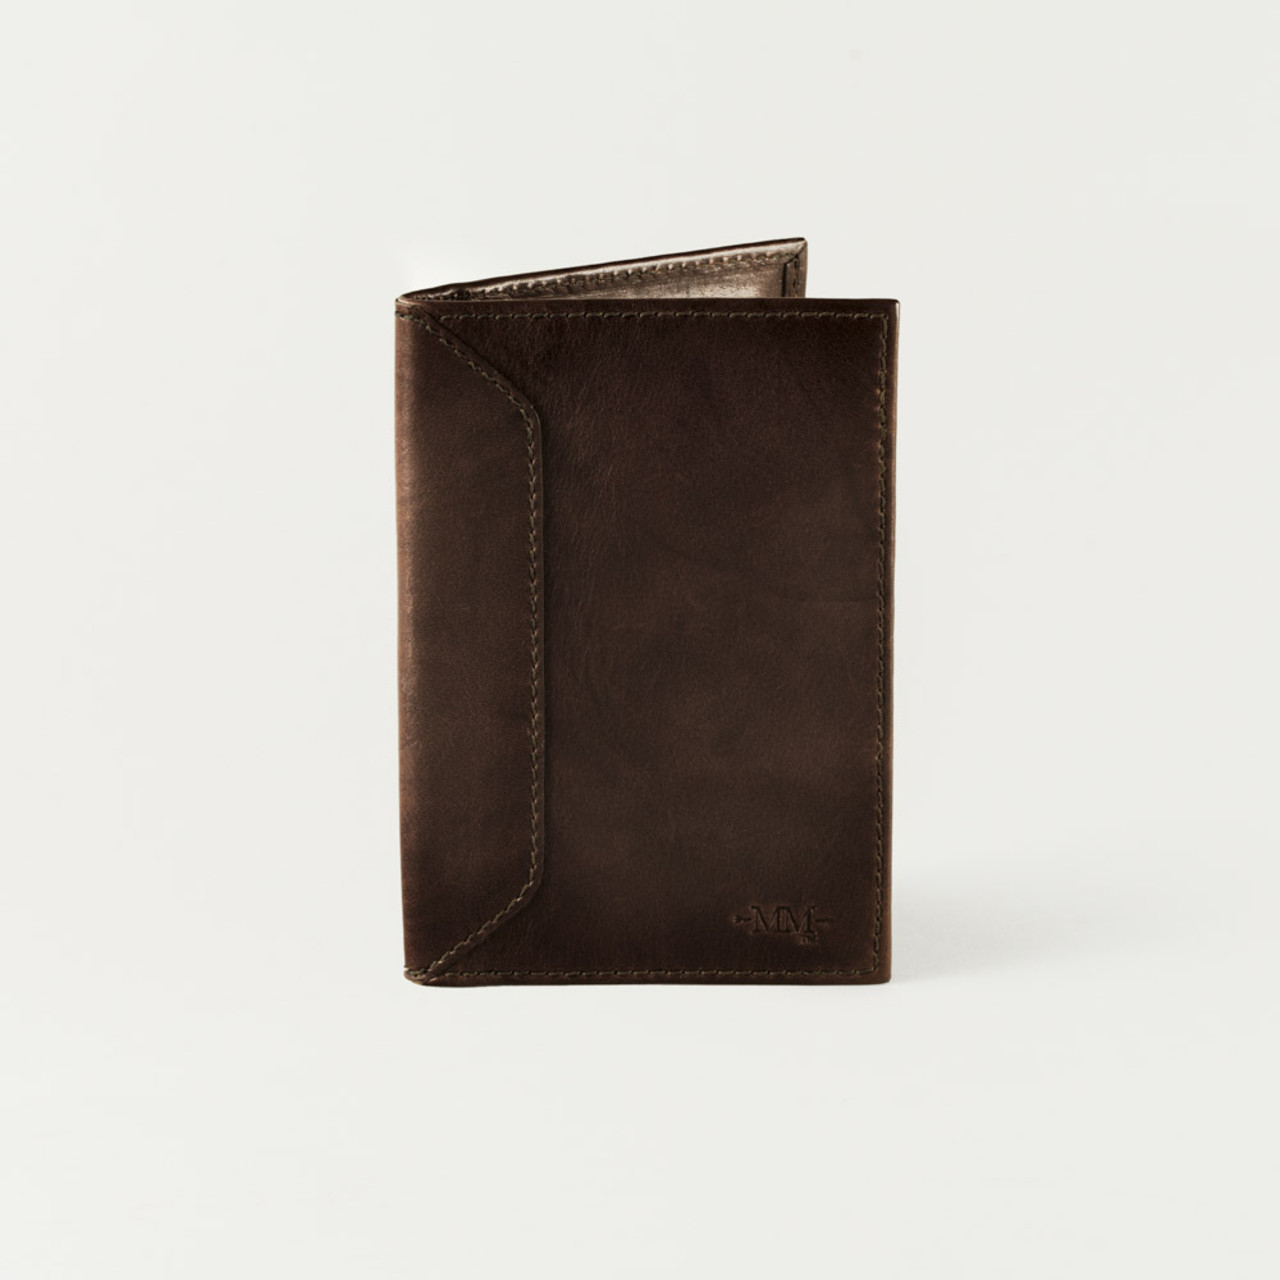 Passport Bedding Accessories Mission Mercantile Passport Wallet Walnut